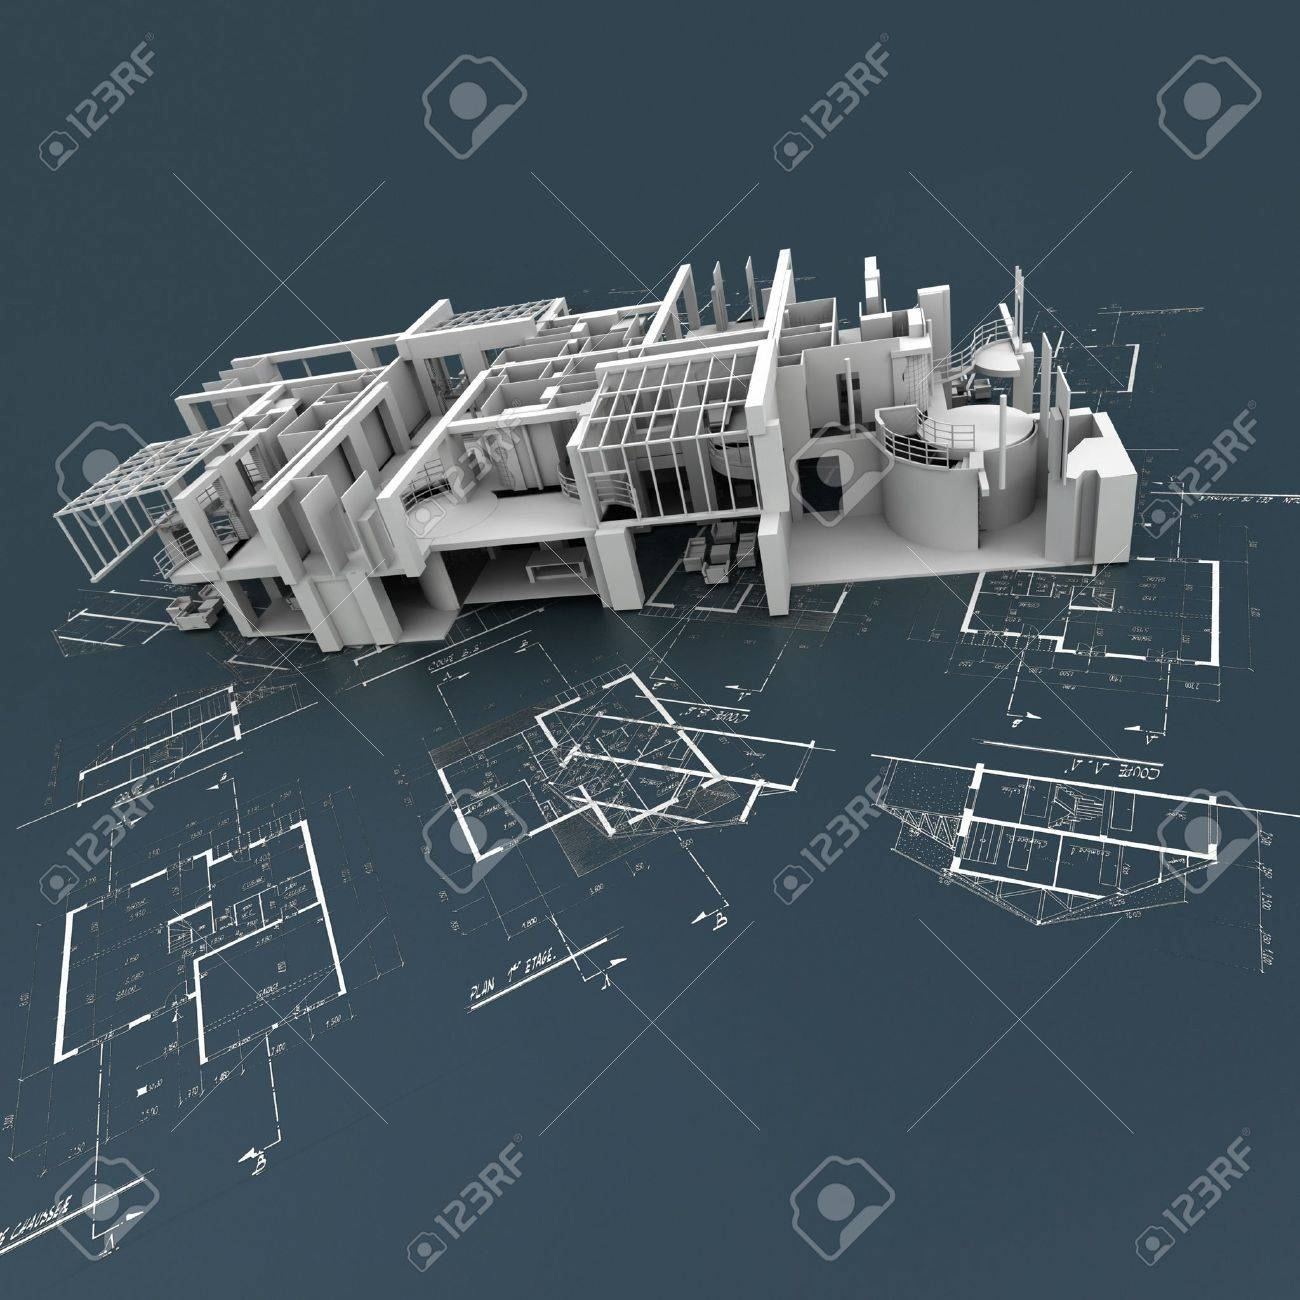 Stock Photo White Building Structure On Top Of Technical Blueprints